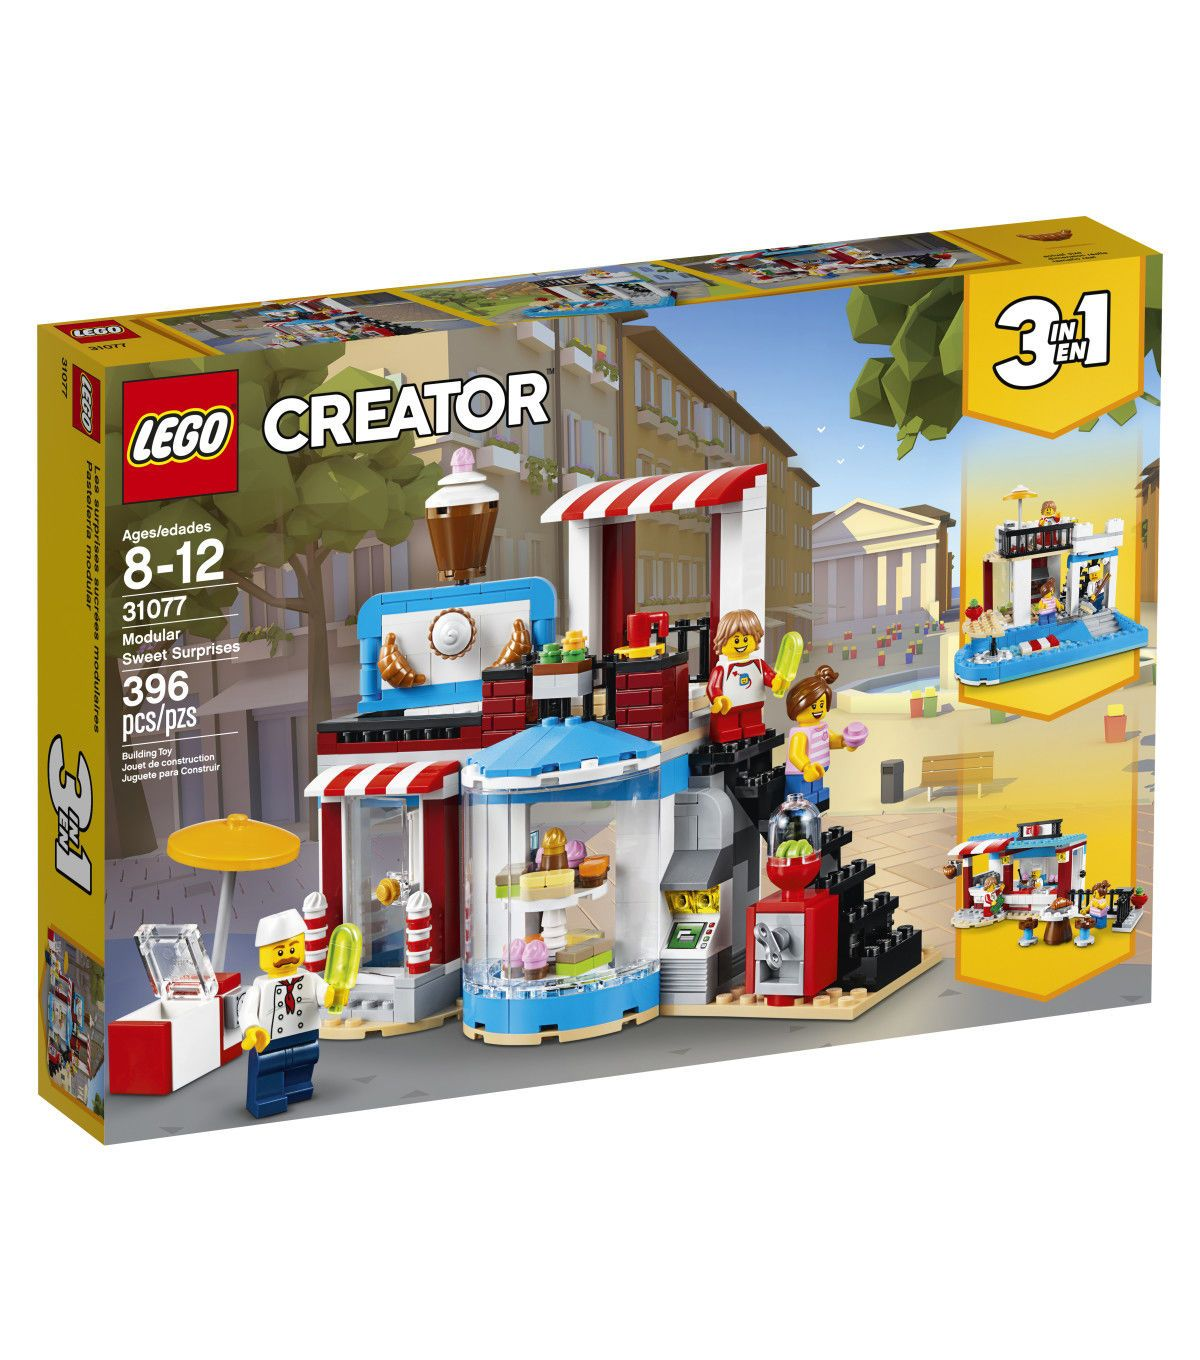 LEGO Creator 31078 Treehouse 3in1 Building Toy Brand New Sealed Box